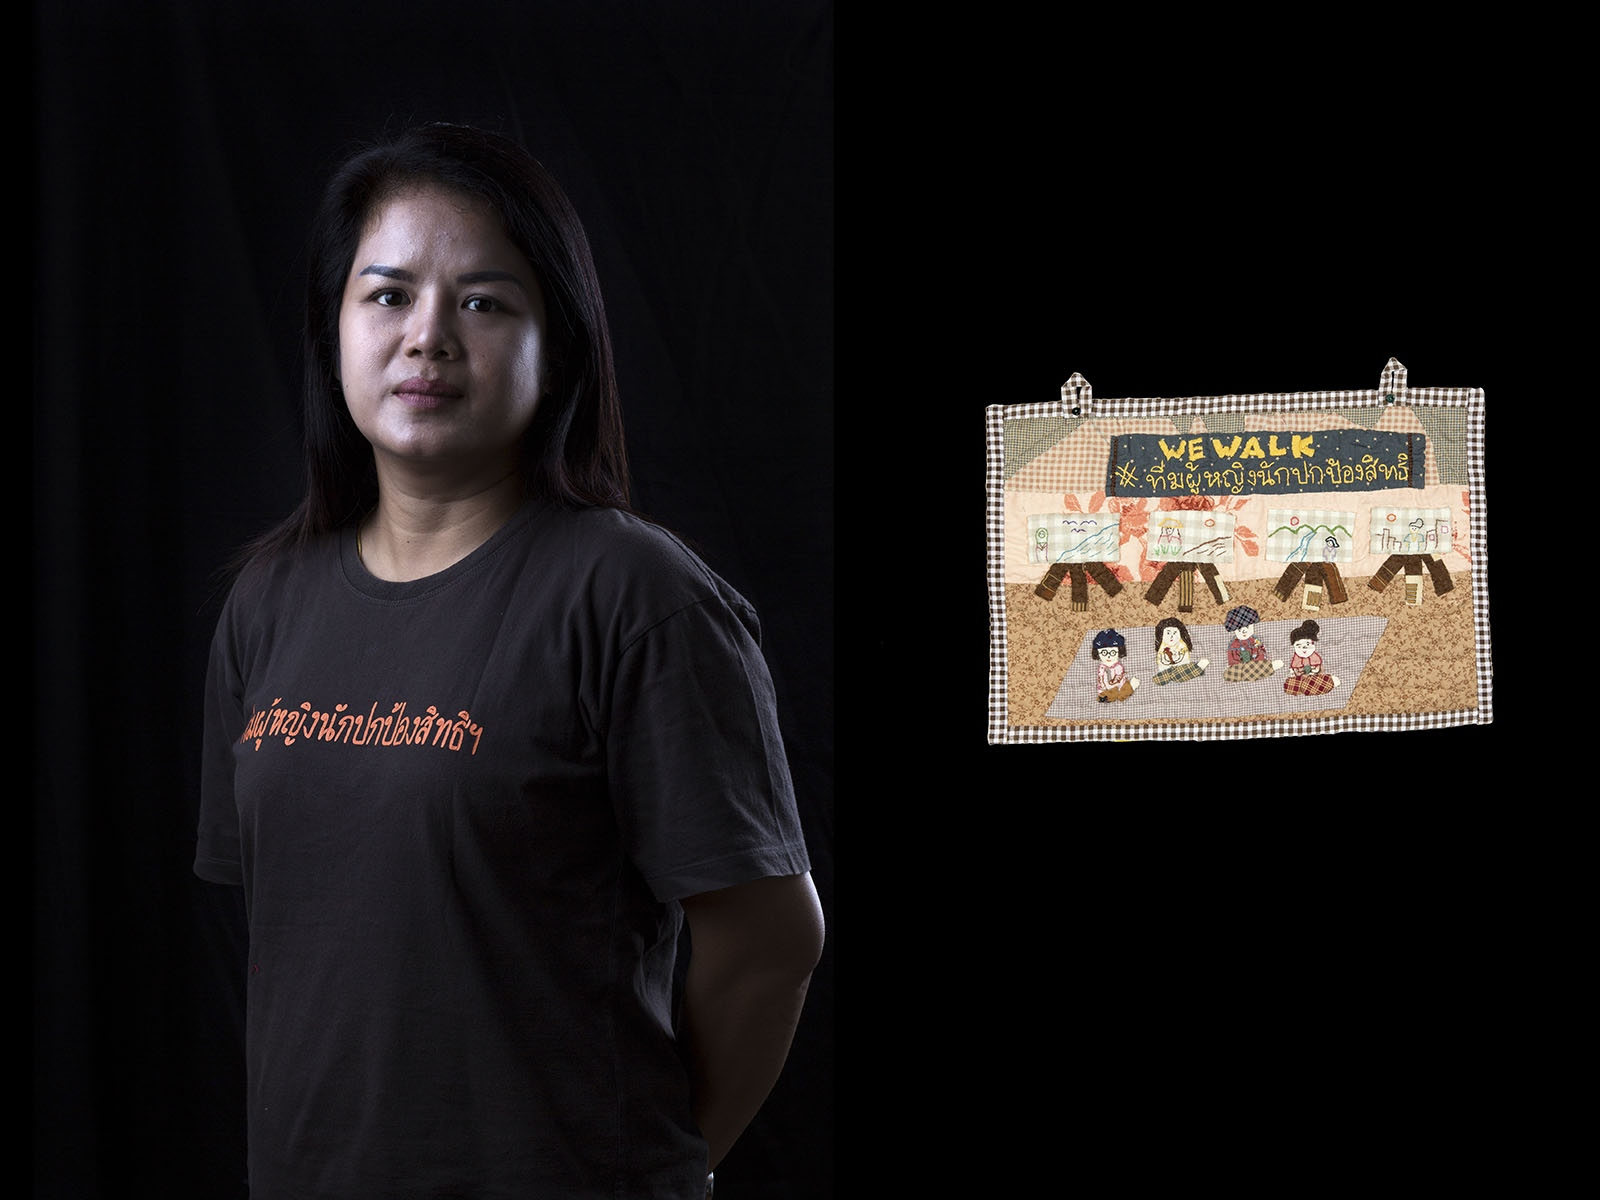 Chutima Chuenhuajai is a member of the Rak Ban Heang environmental group in Lampang Province, Thailand, who are fighting against the construction of a large open-pit coal mine.